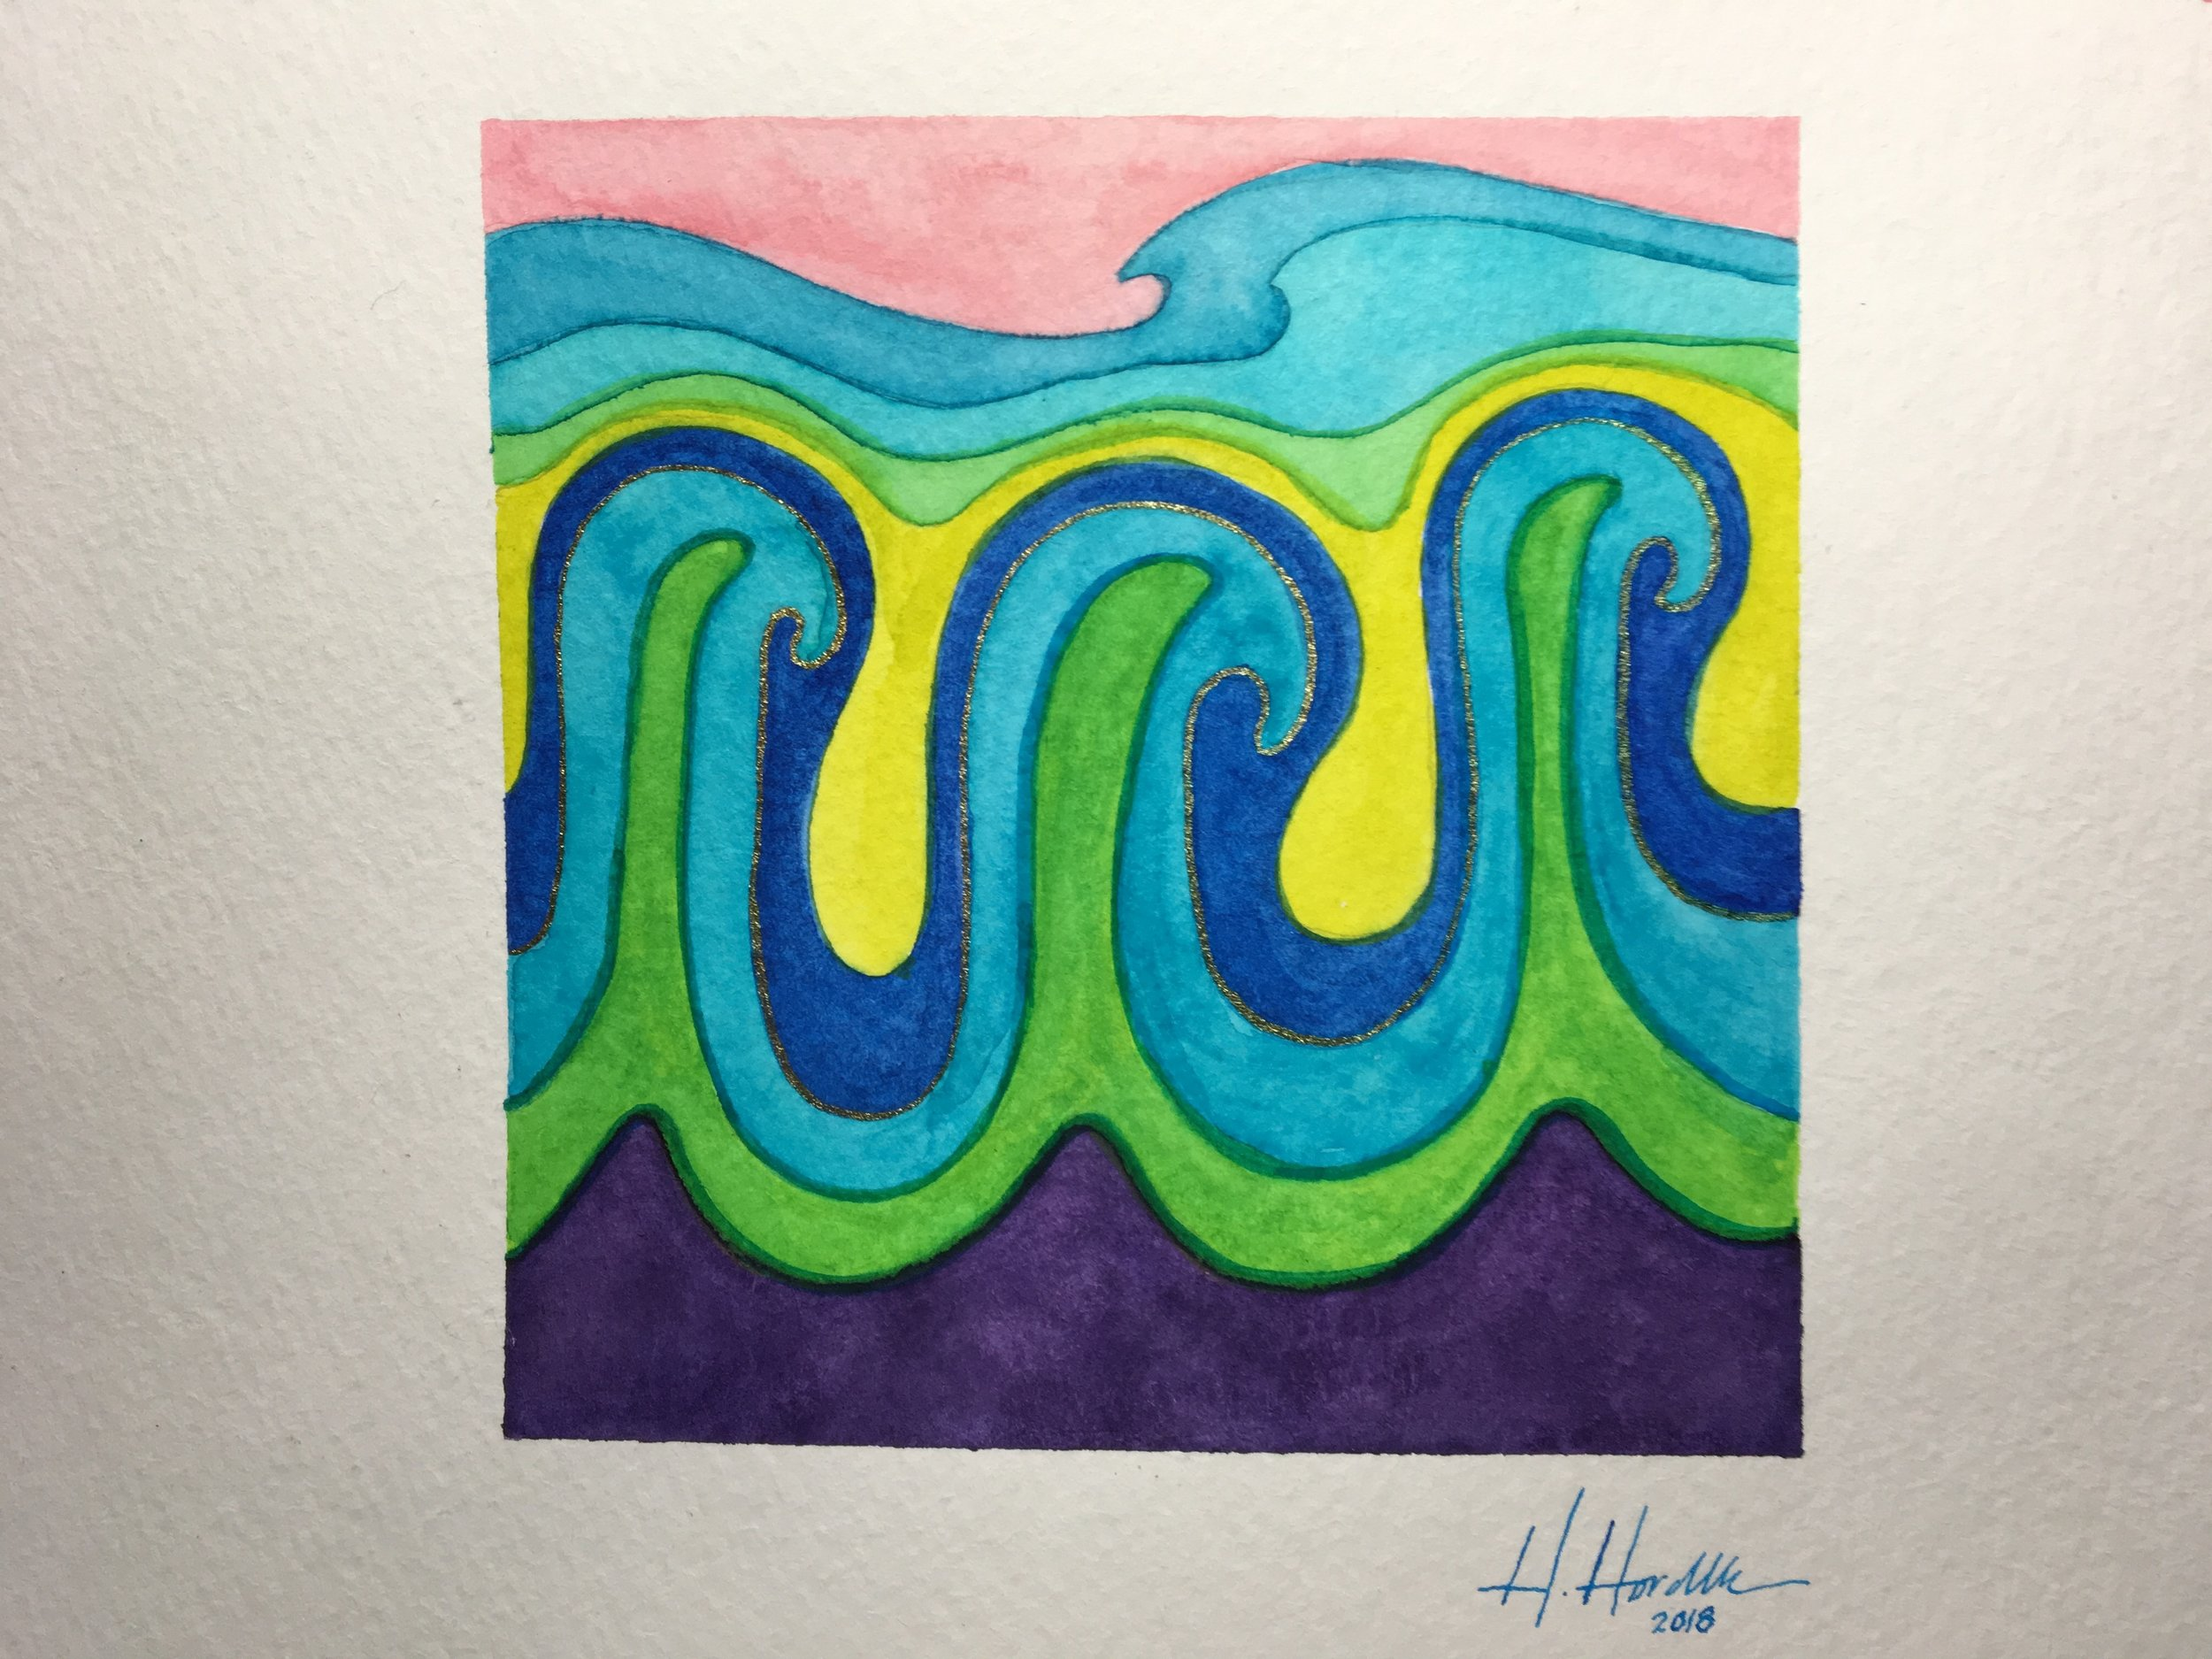 But I love love love the two waves at the top, and the pink sky. I might try to do a whole painting of just that theme.